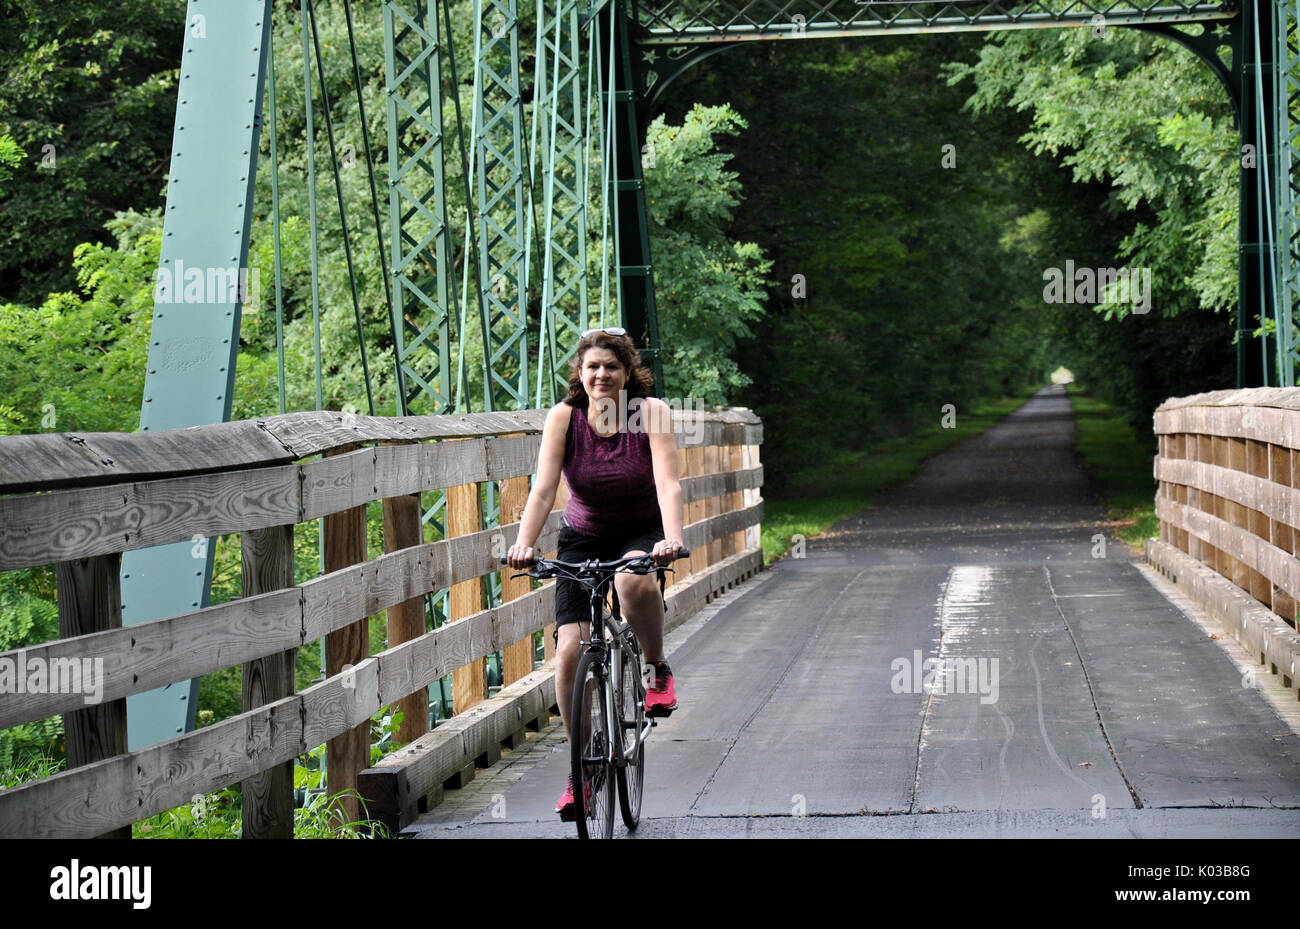 Woman Bicycling over a Metal Bridge on the Western Reserve Greenway Trail in Ashtabula County, Ohio - Stock Image